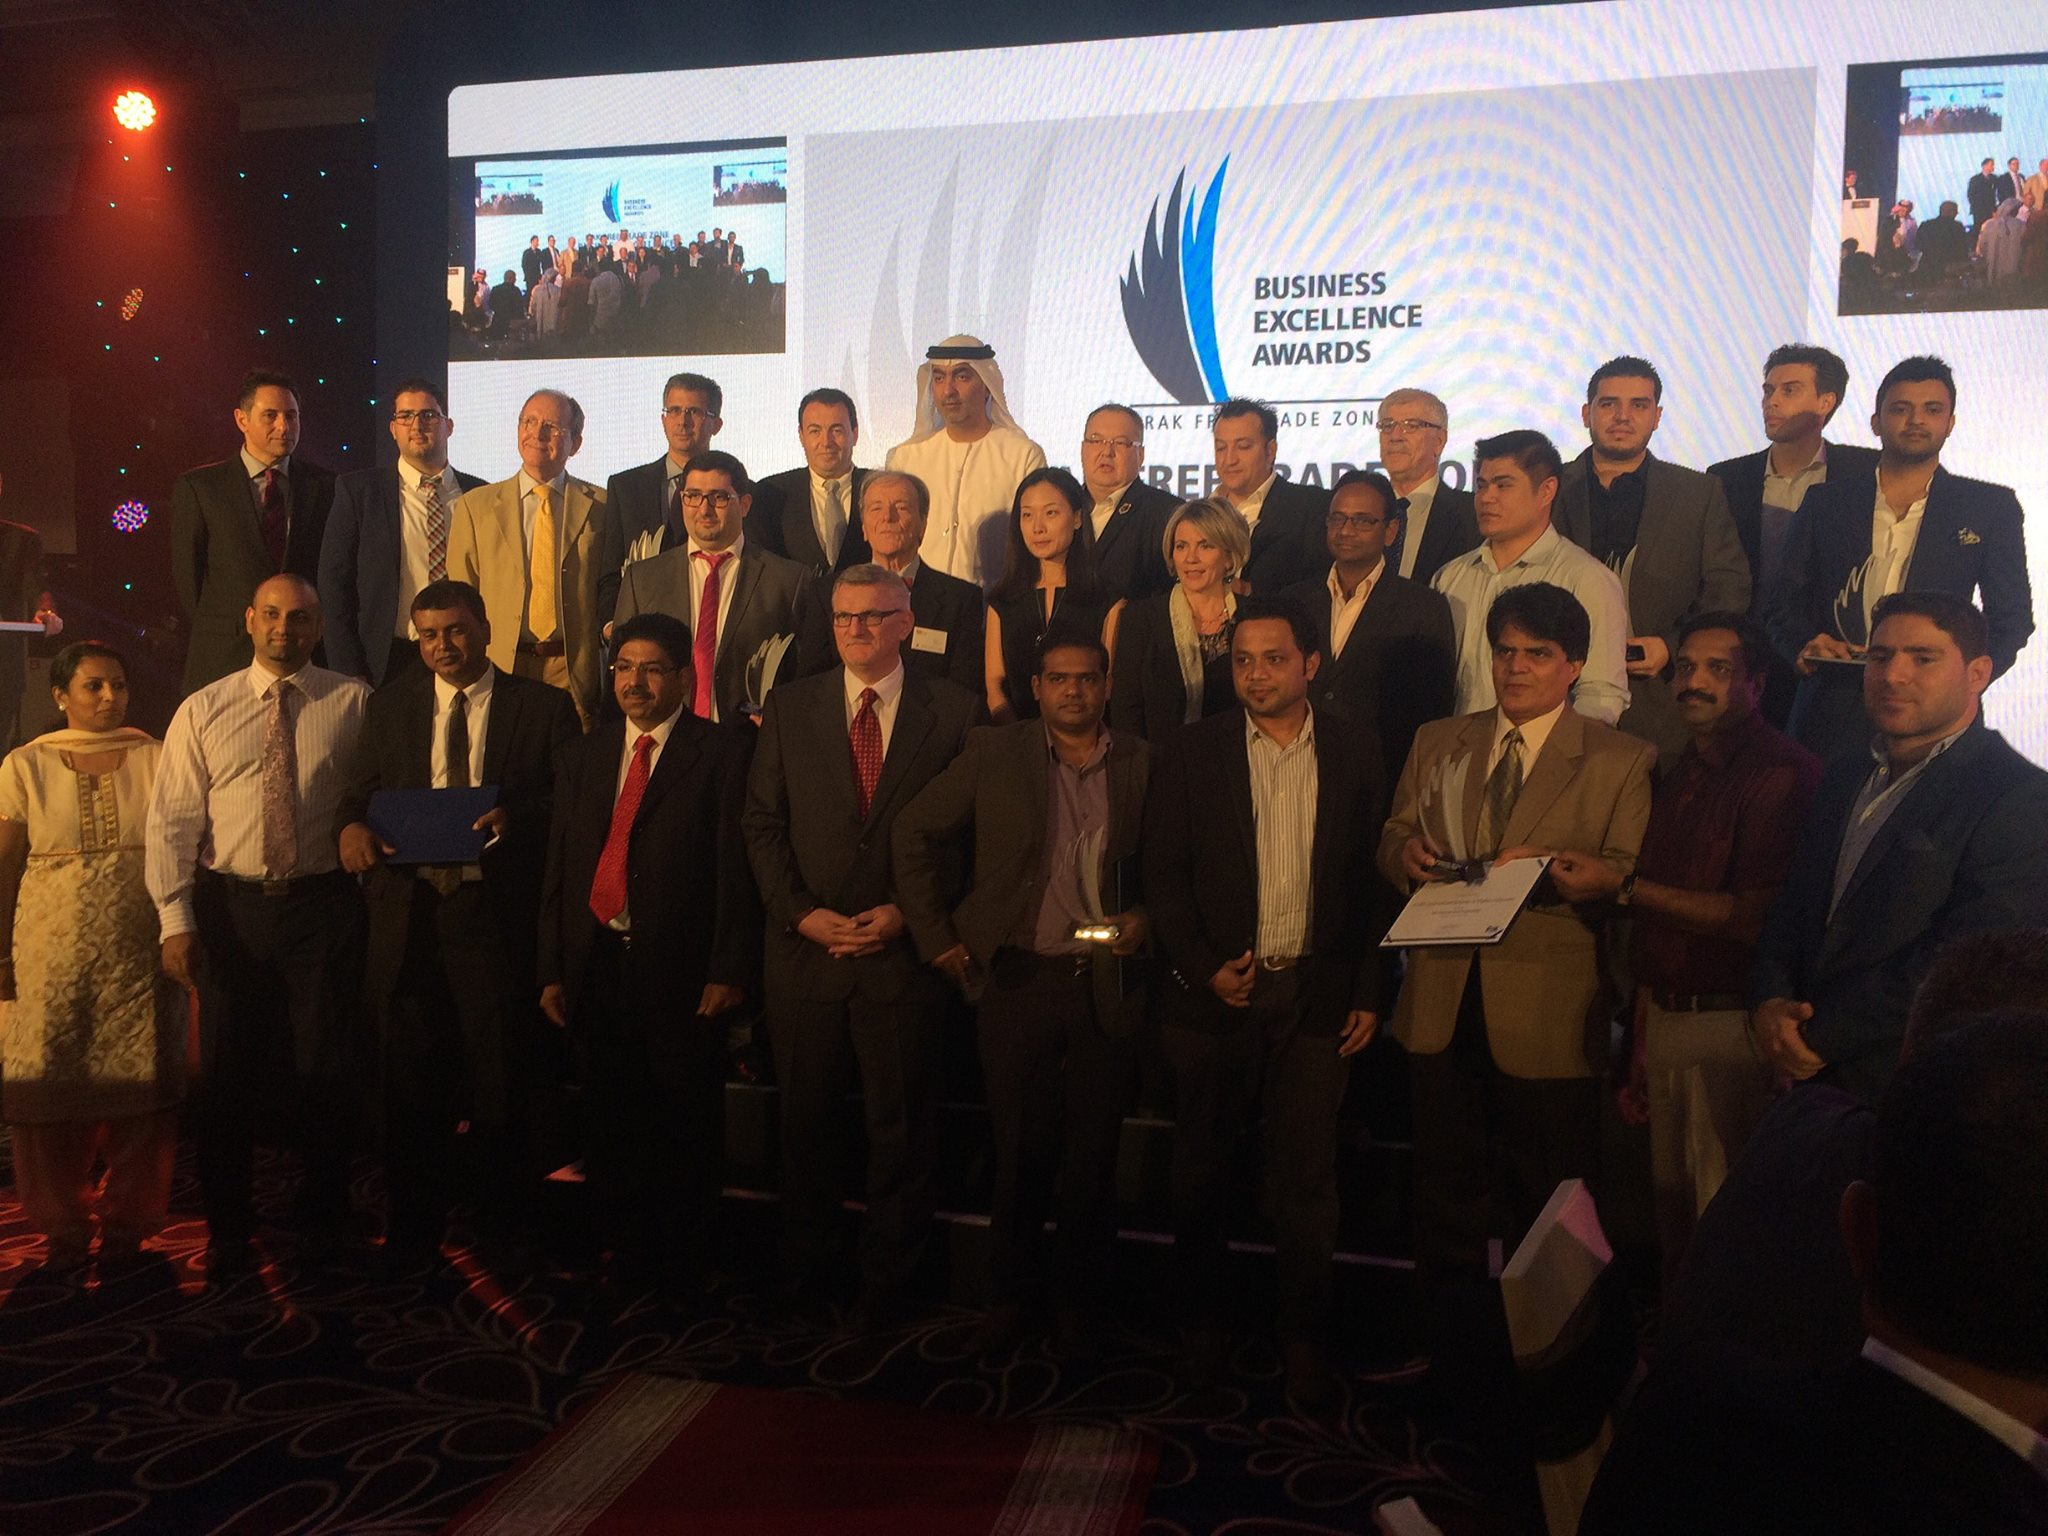 imgThe 2nd Annual RAK FTZ Business Excellence Awards held at Rixos Bab Al Bahr